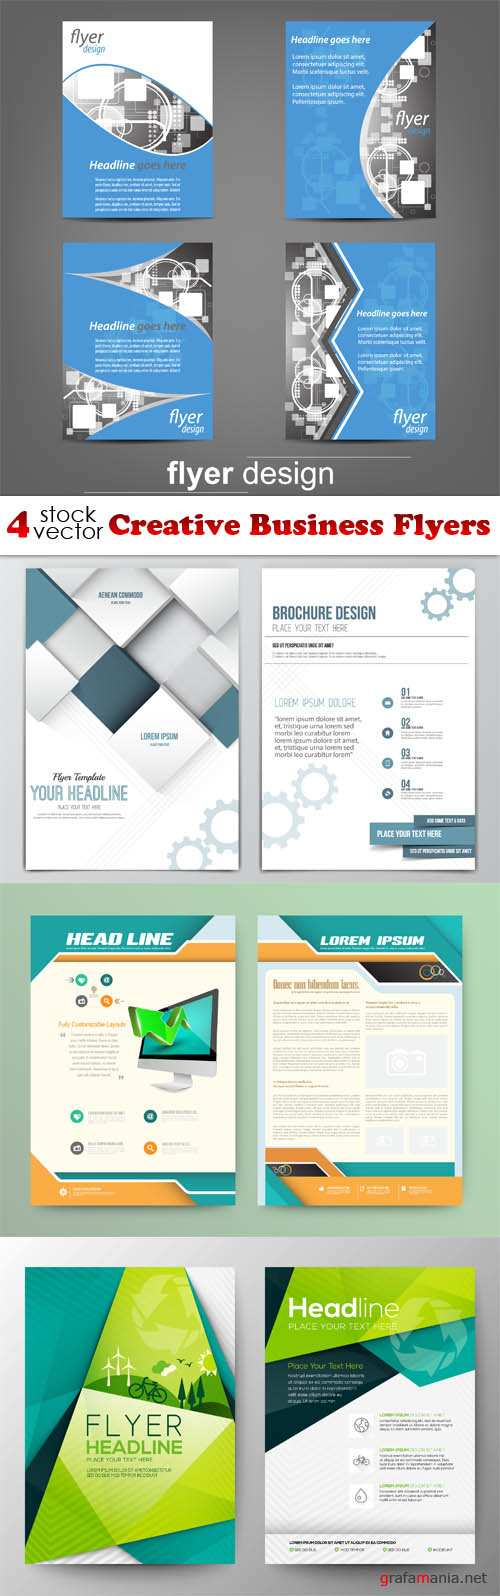 Vectors - Creative Business Flyers